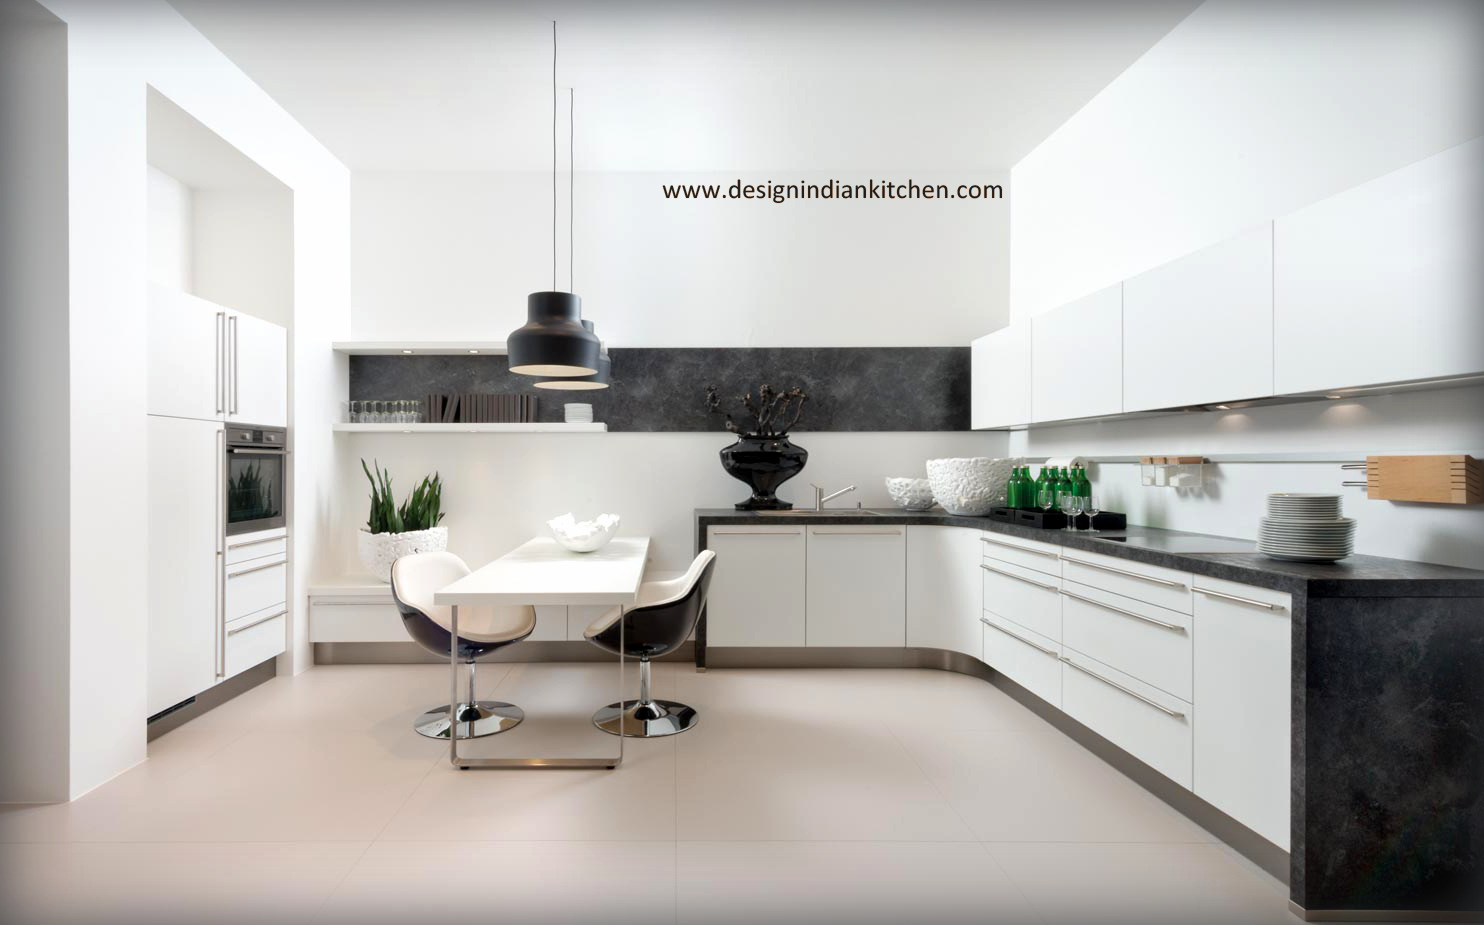 indian middle class kitchen design indian middle class kitchen design modular kitchen concepts amp modular concept of kitchens download